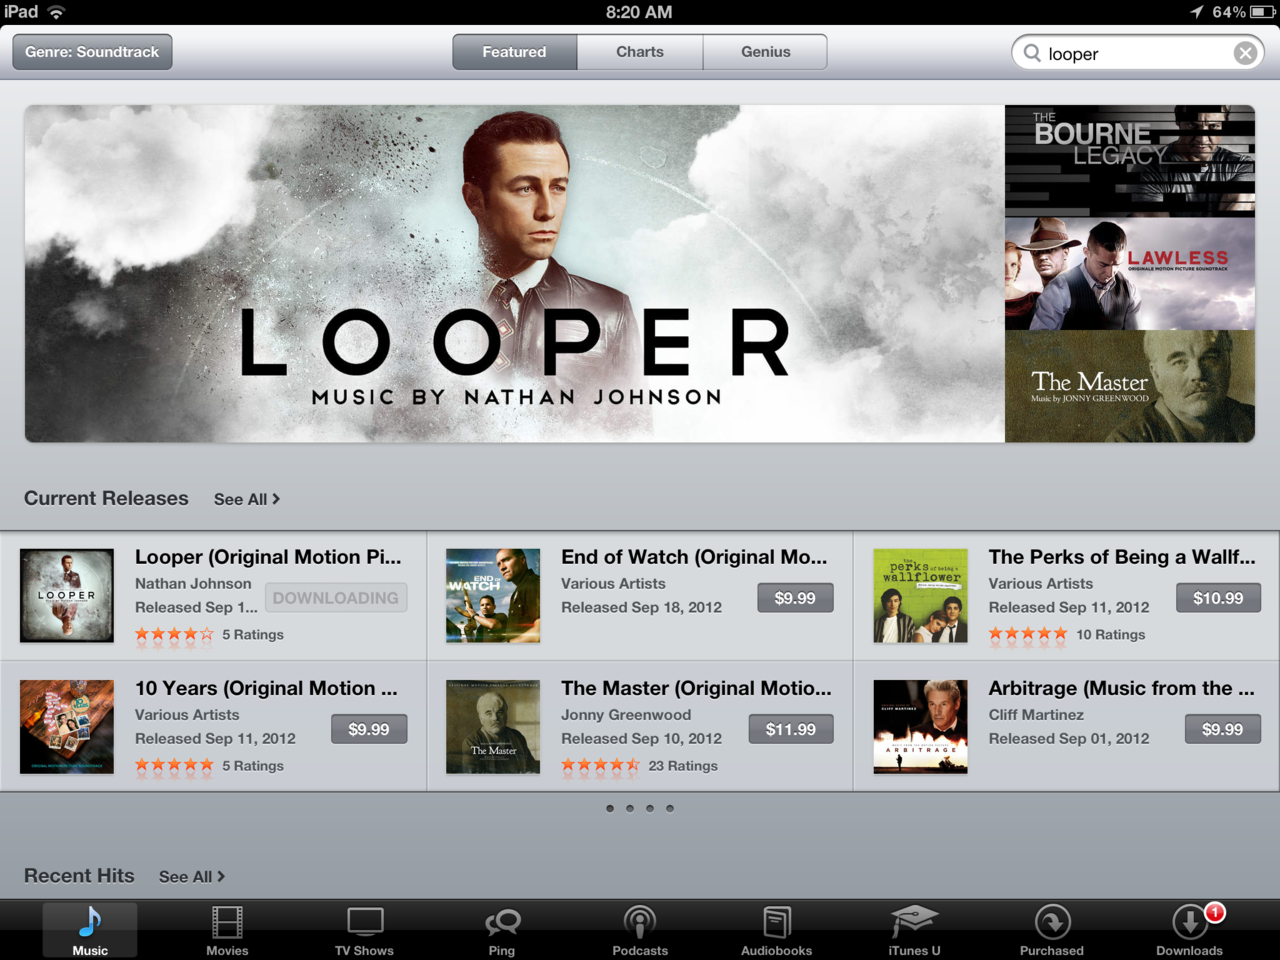 Whoa - The Looper album is on the front page of iTunes Soundtracks! Quite a thrilling shock to wake up to, especially when the next banner that comes up is Jonny Greenwood's score for The Master! So, that just made my day. More details to come this afternoon about the physical CD release :)